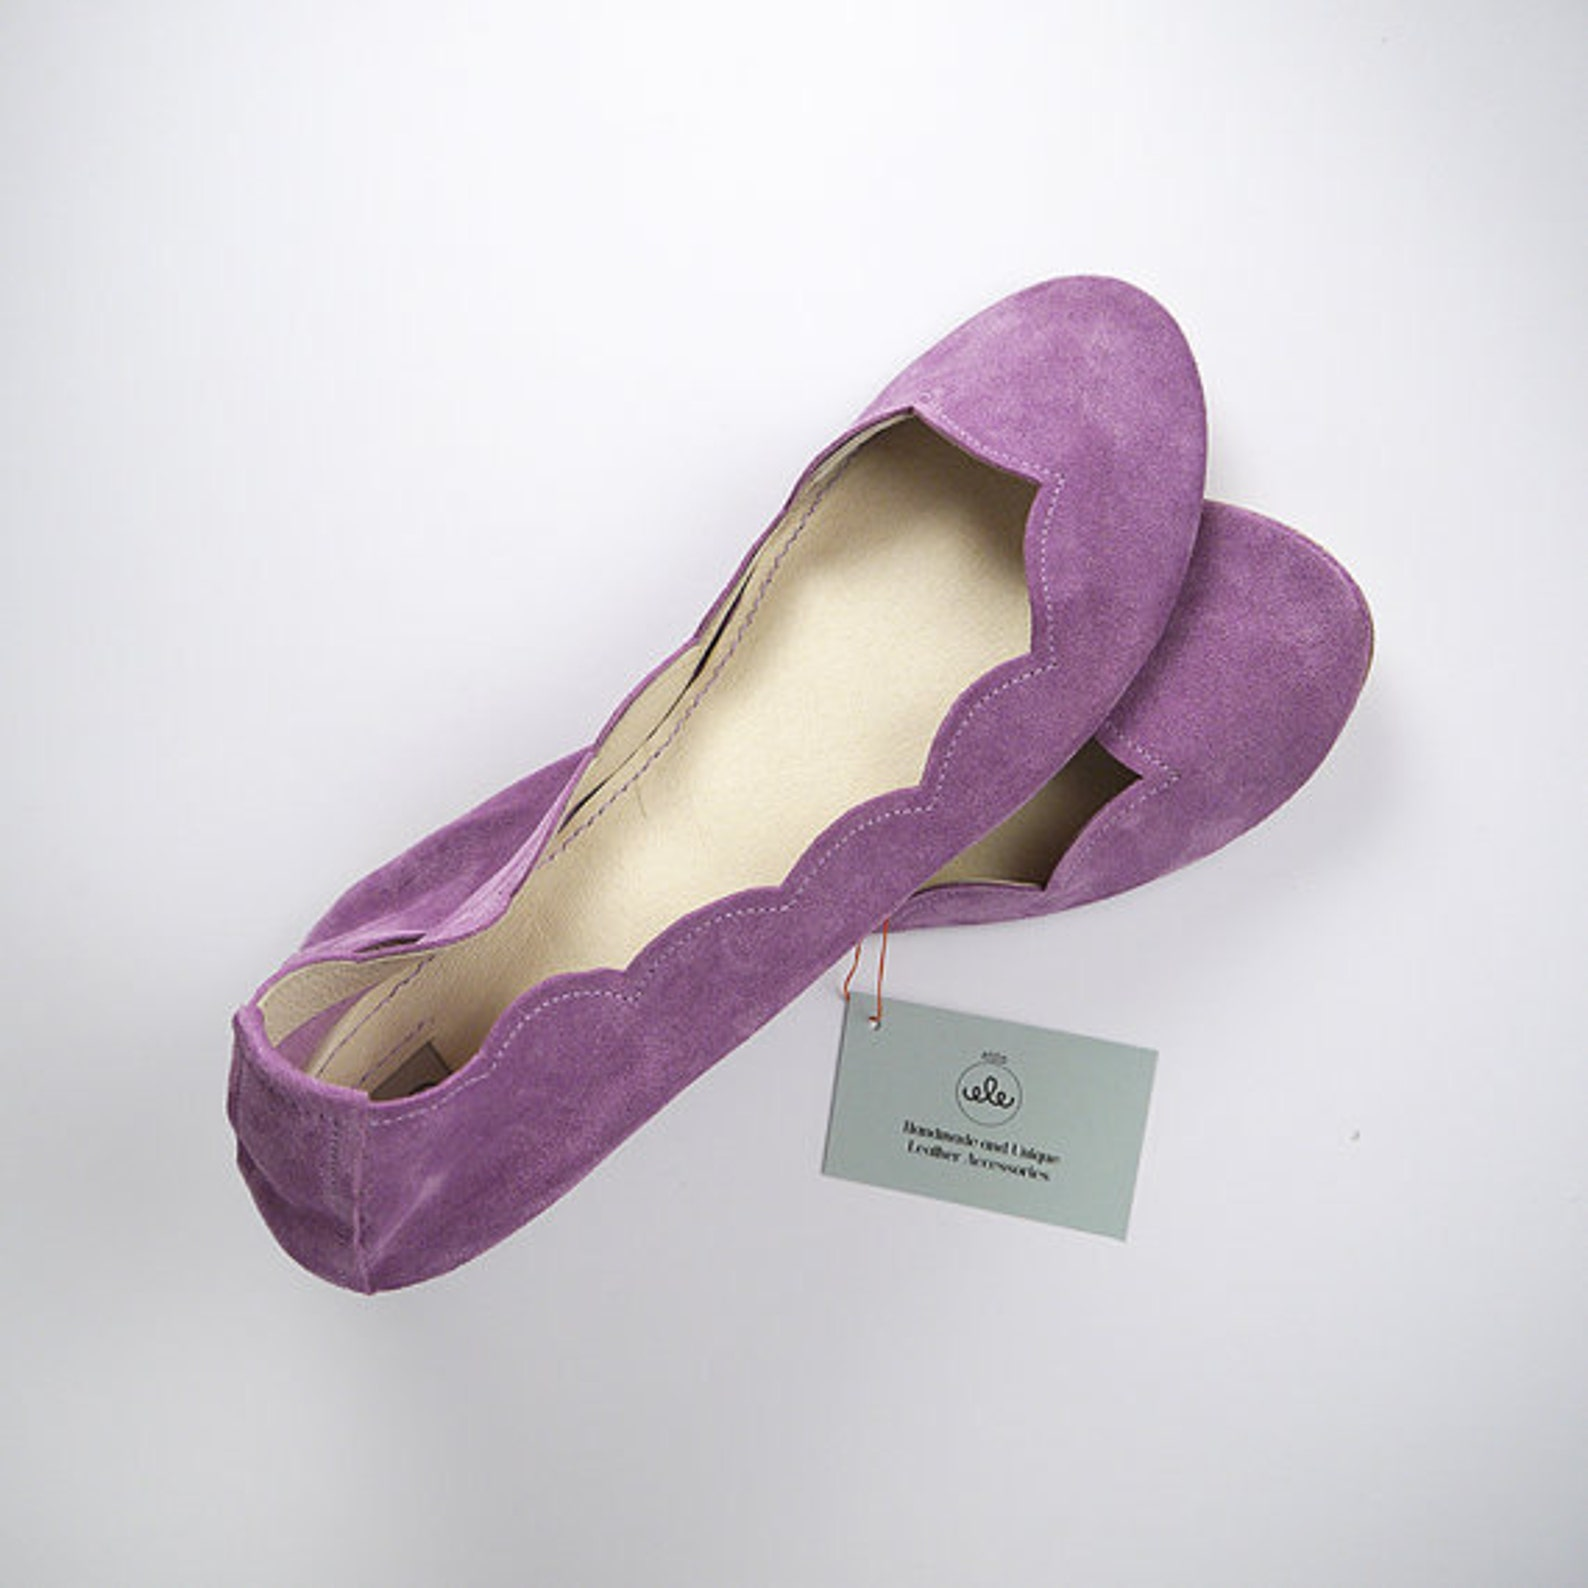 shoes on sale, 20% off, size 34, ready to ship, scalloped ballet flats shoes radiant orchid lilac light violet slip on ballerina